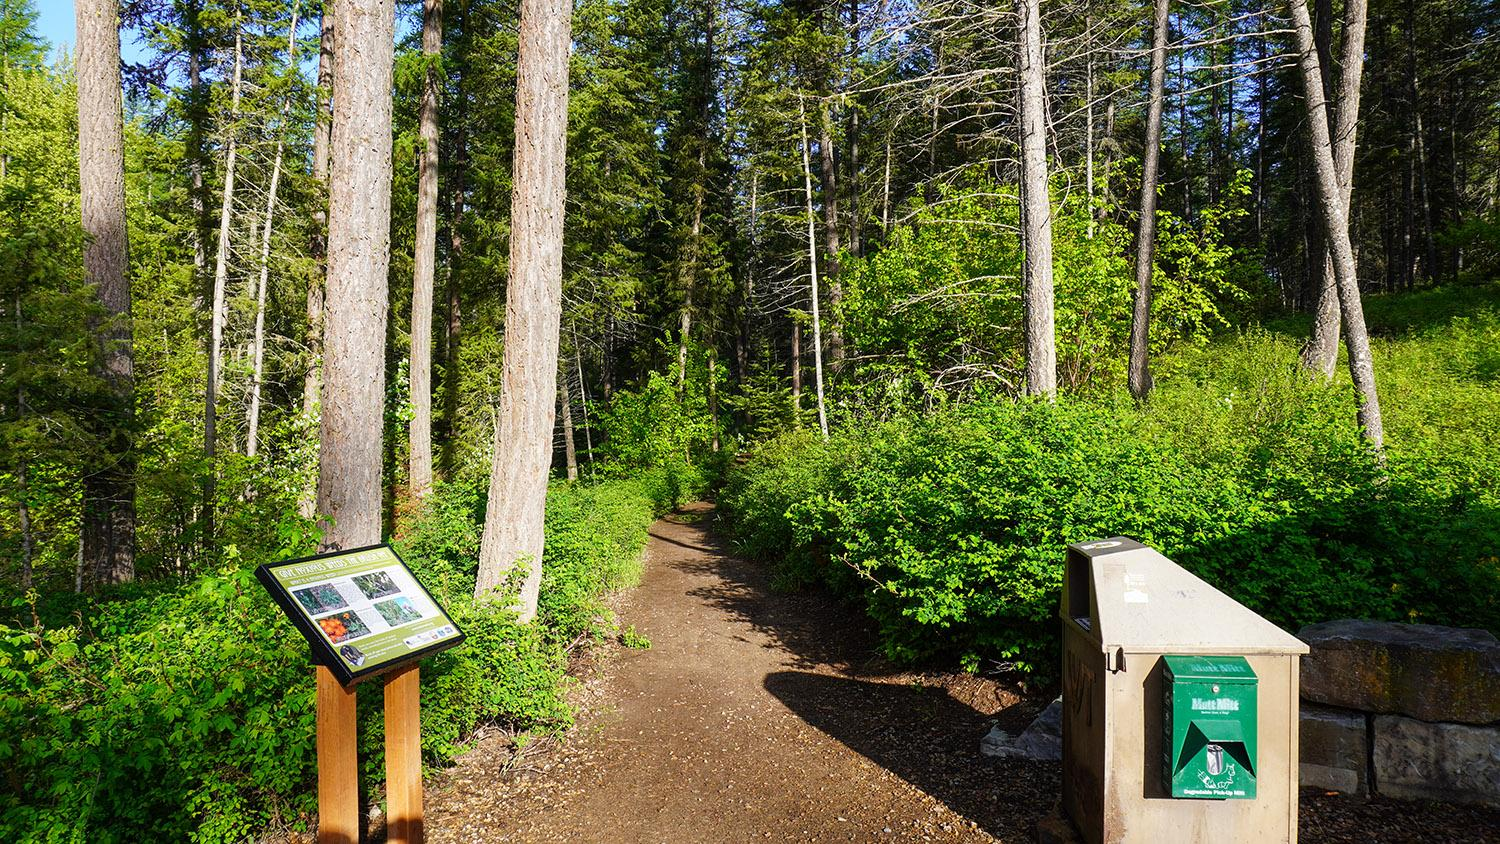 The Whitefish Trail.